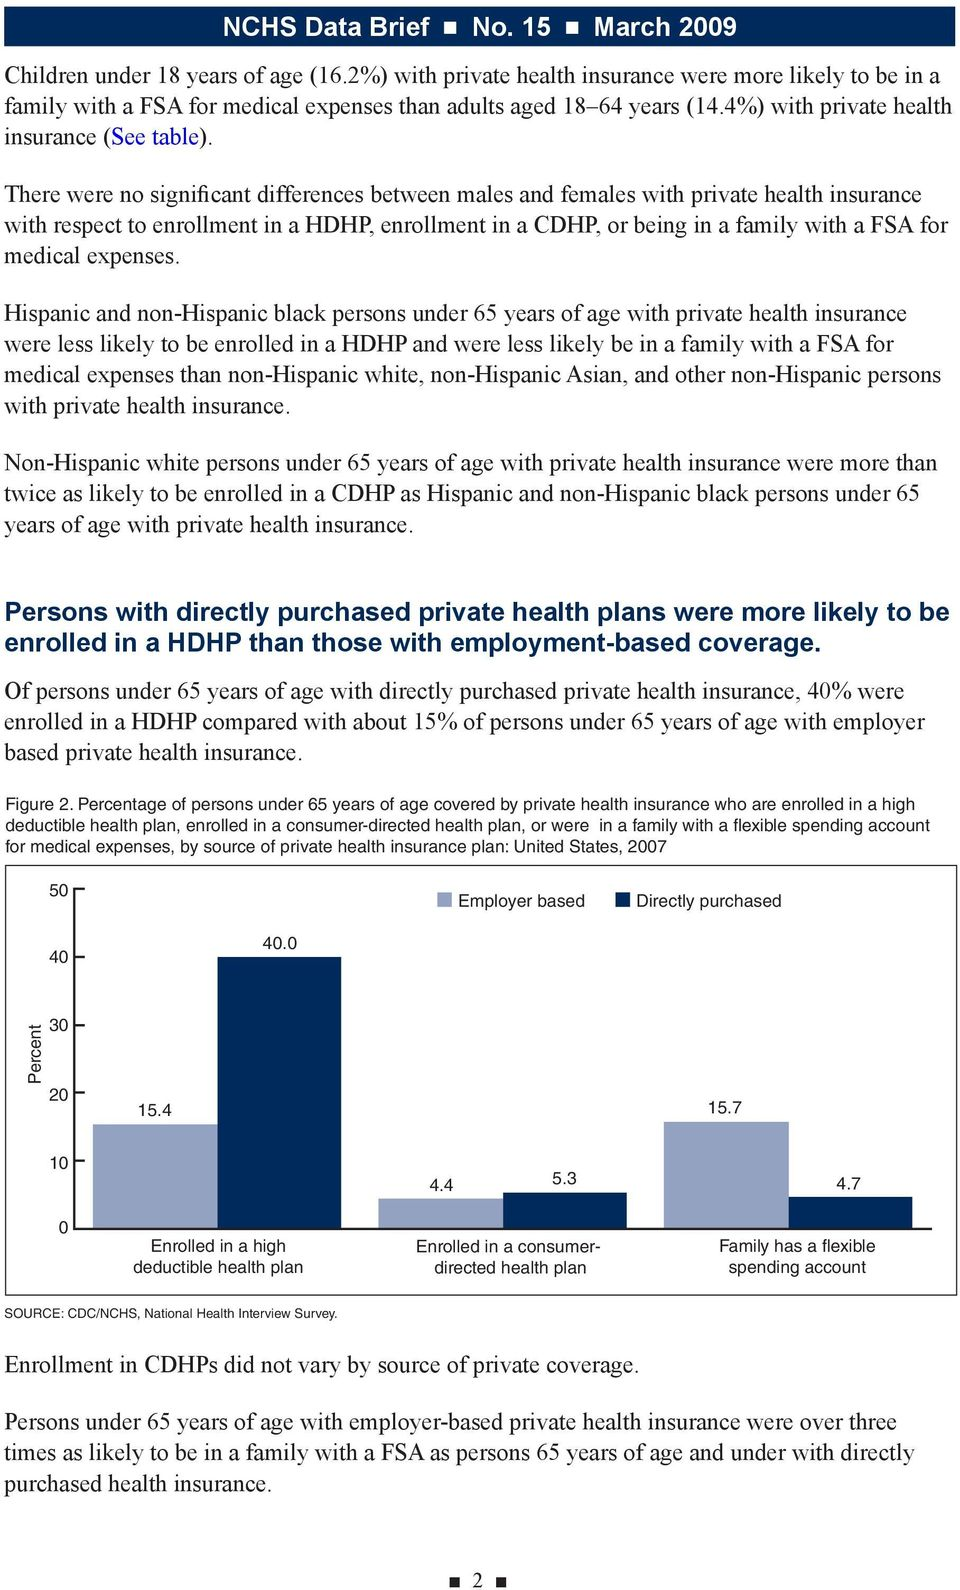 There were no significant differences between males and females with private health insurance with respect to enrollment in a HDHP, enrollment in a CDHP, or being in a family with a FSA for medical